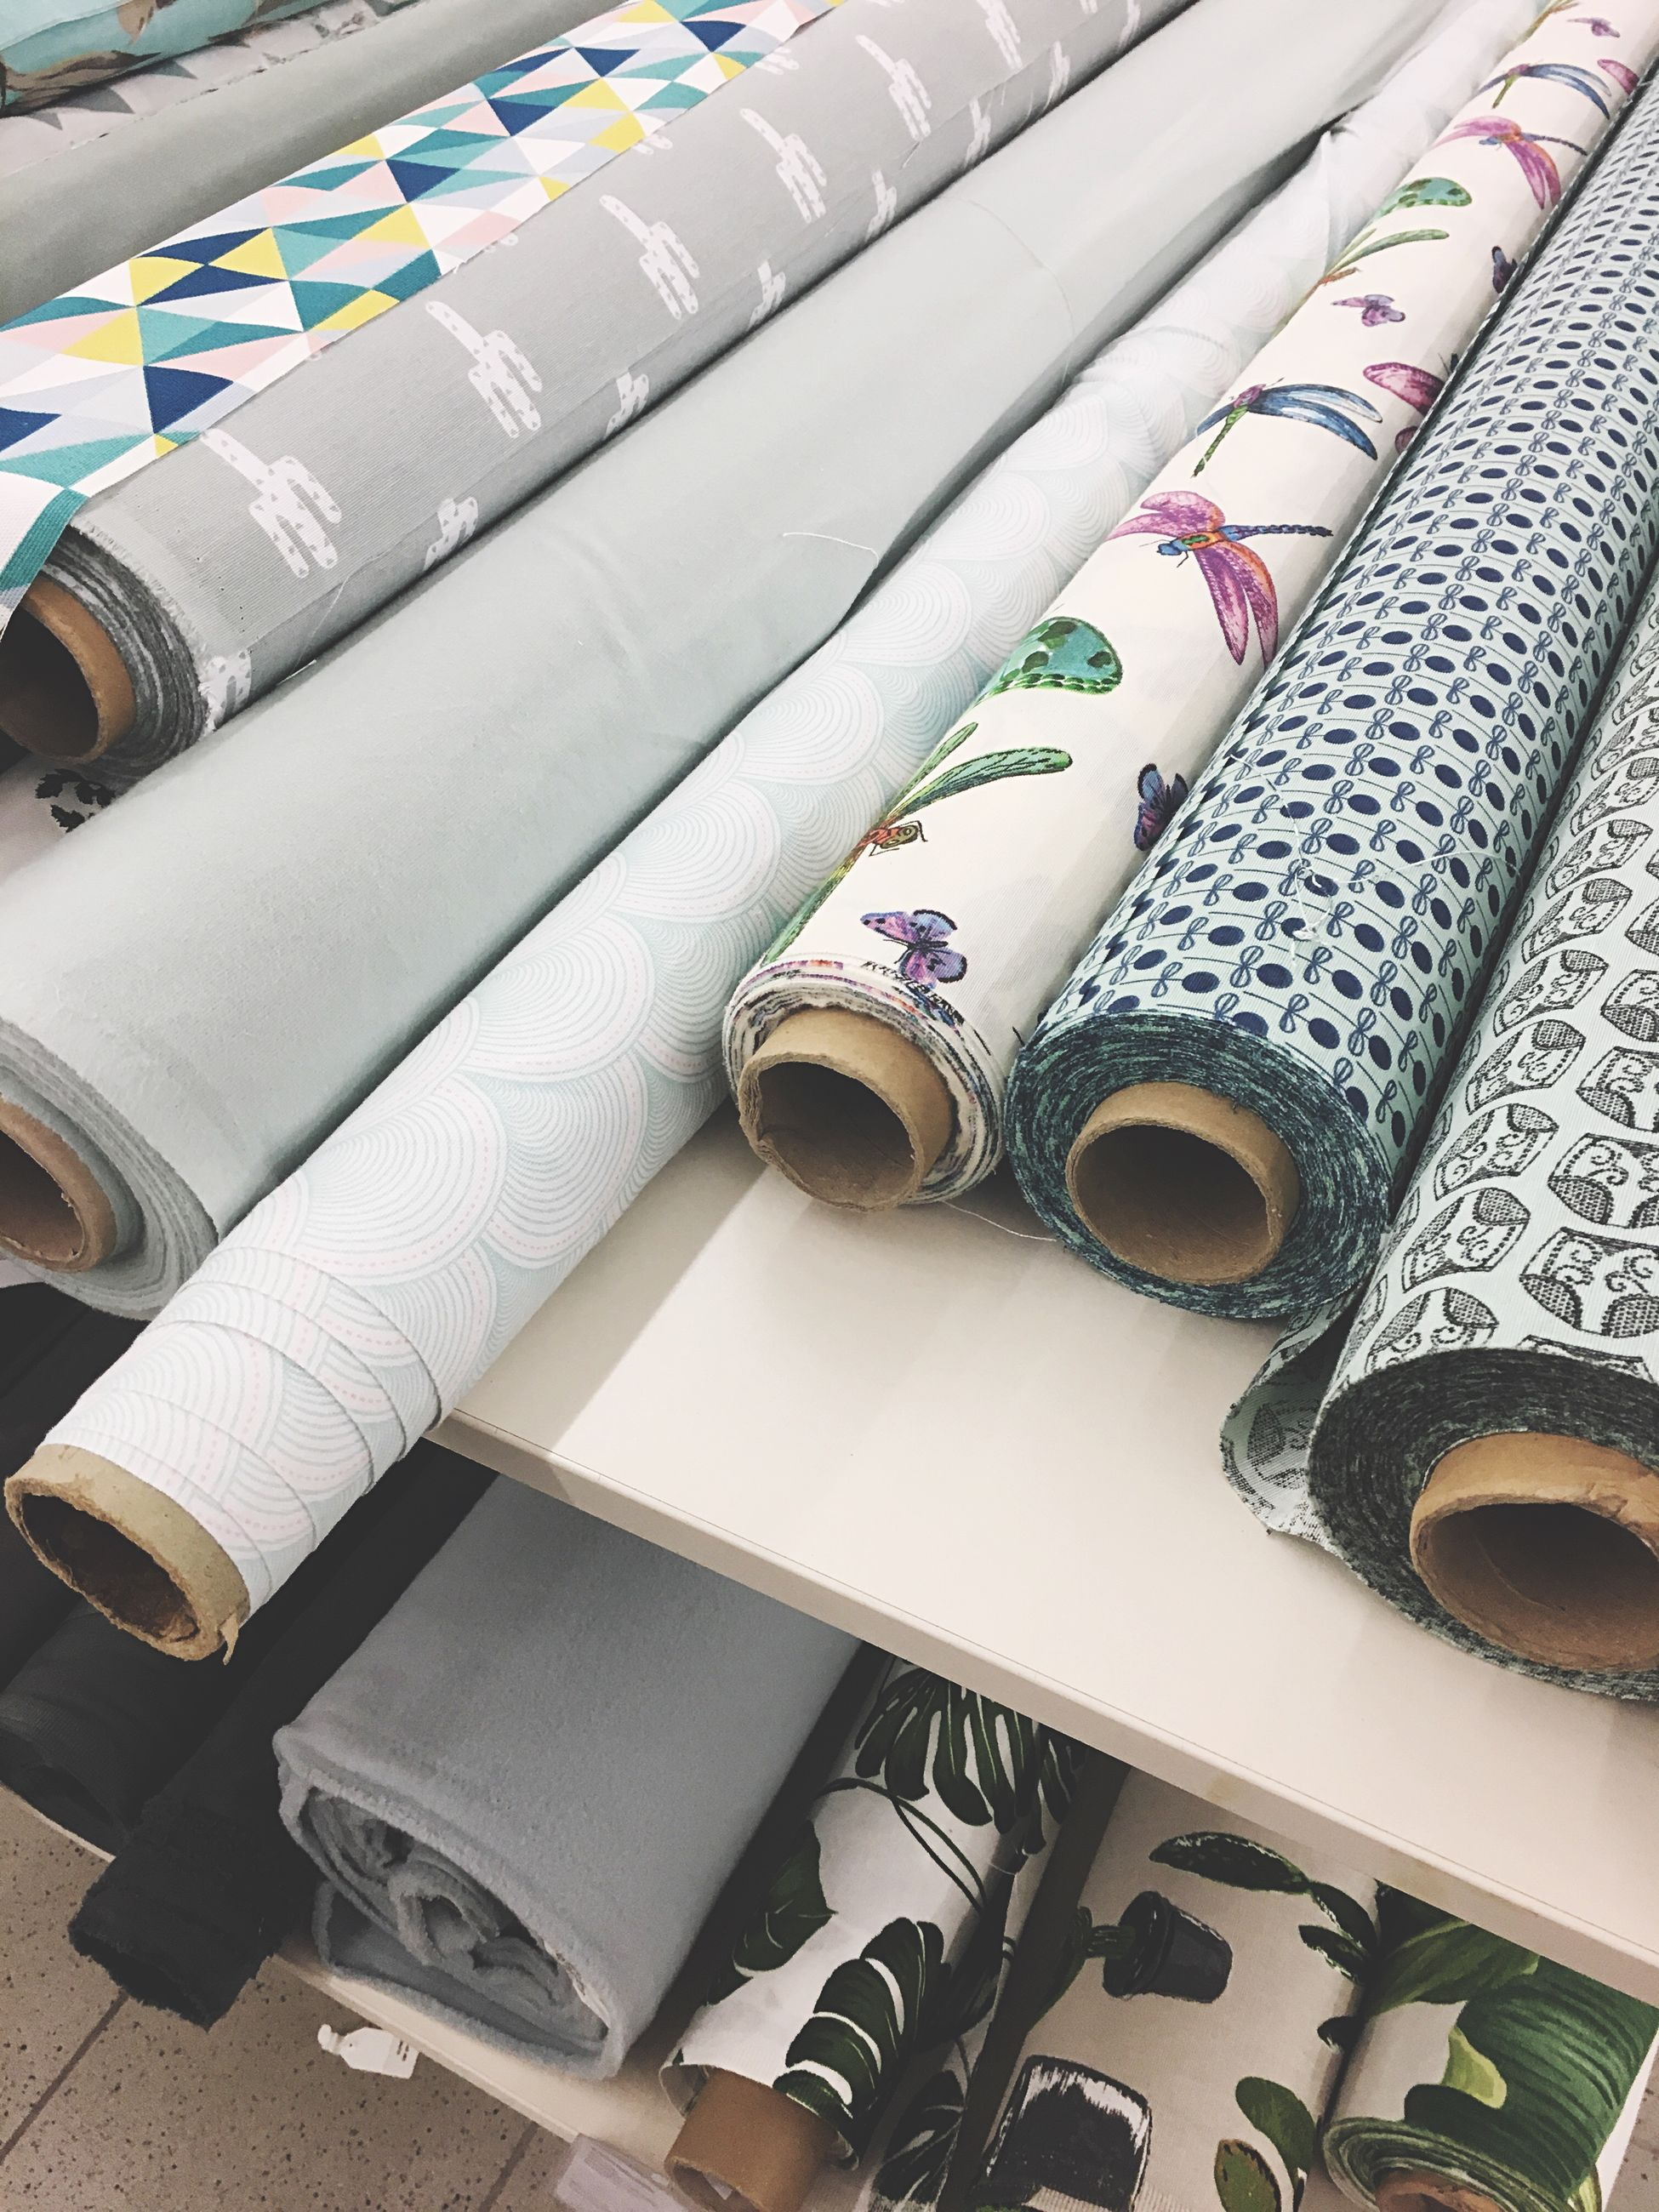 Close-up of fabric for sale in store